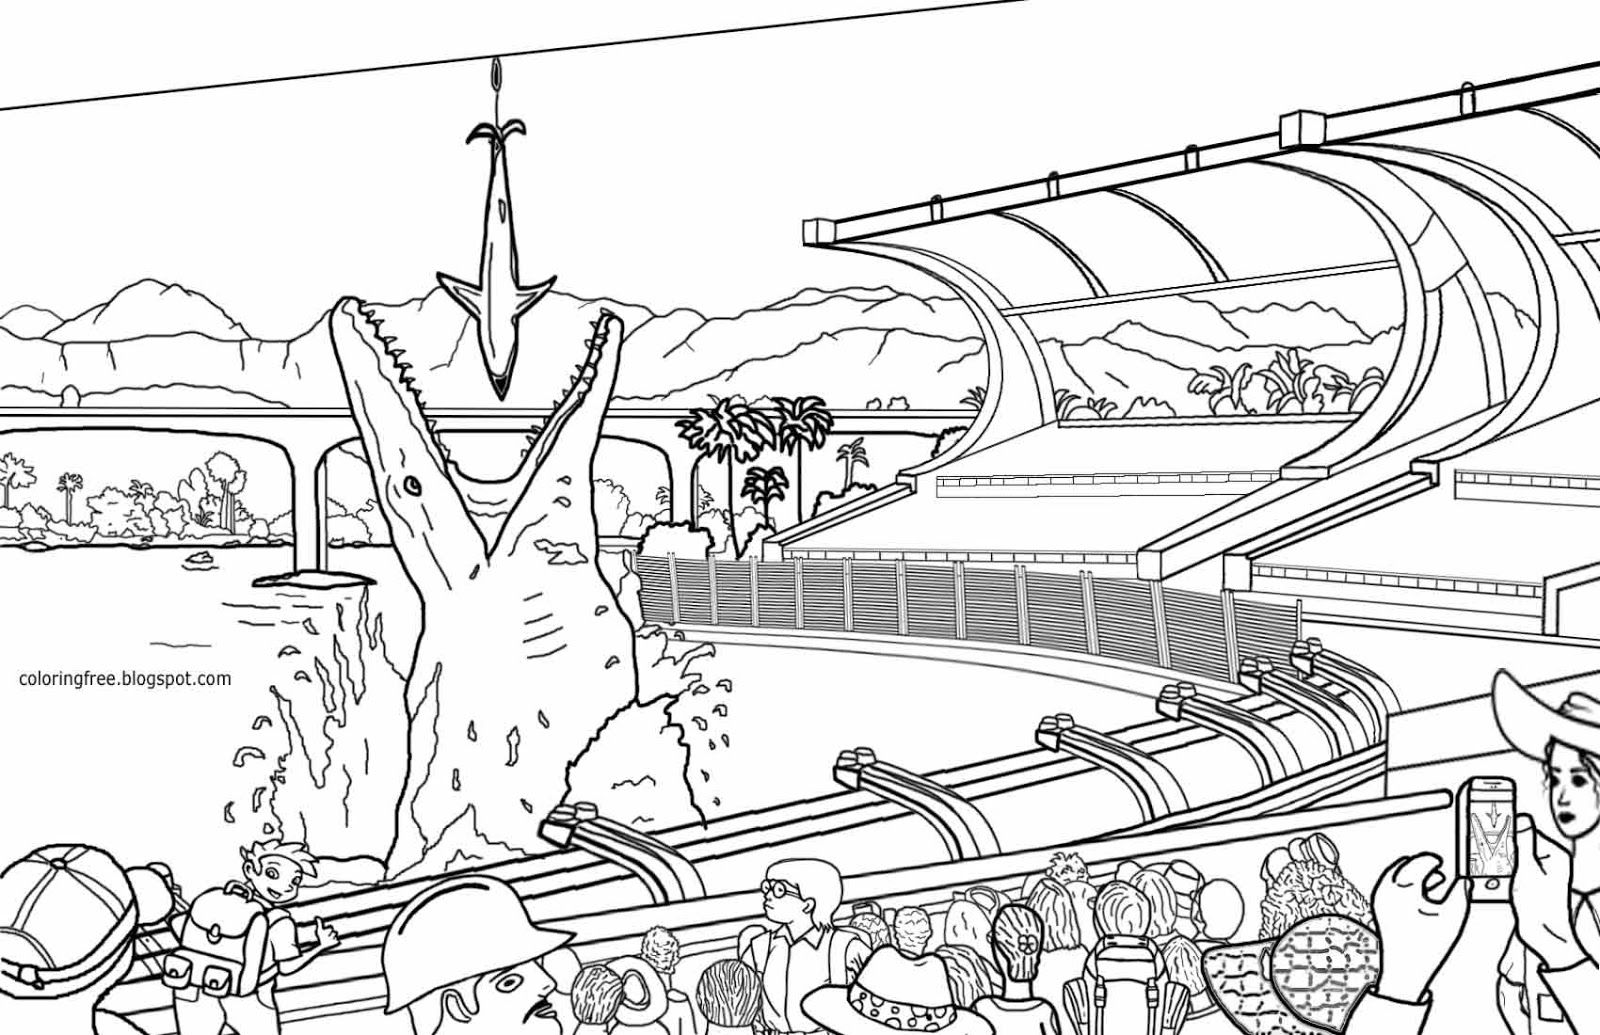 Disney World Coloring Pages Printable : Disney world coloring pages print home